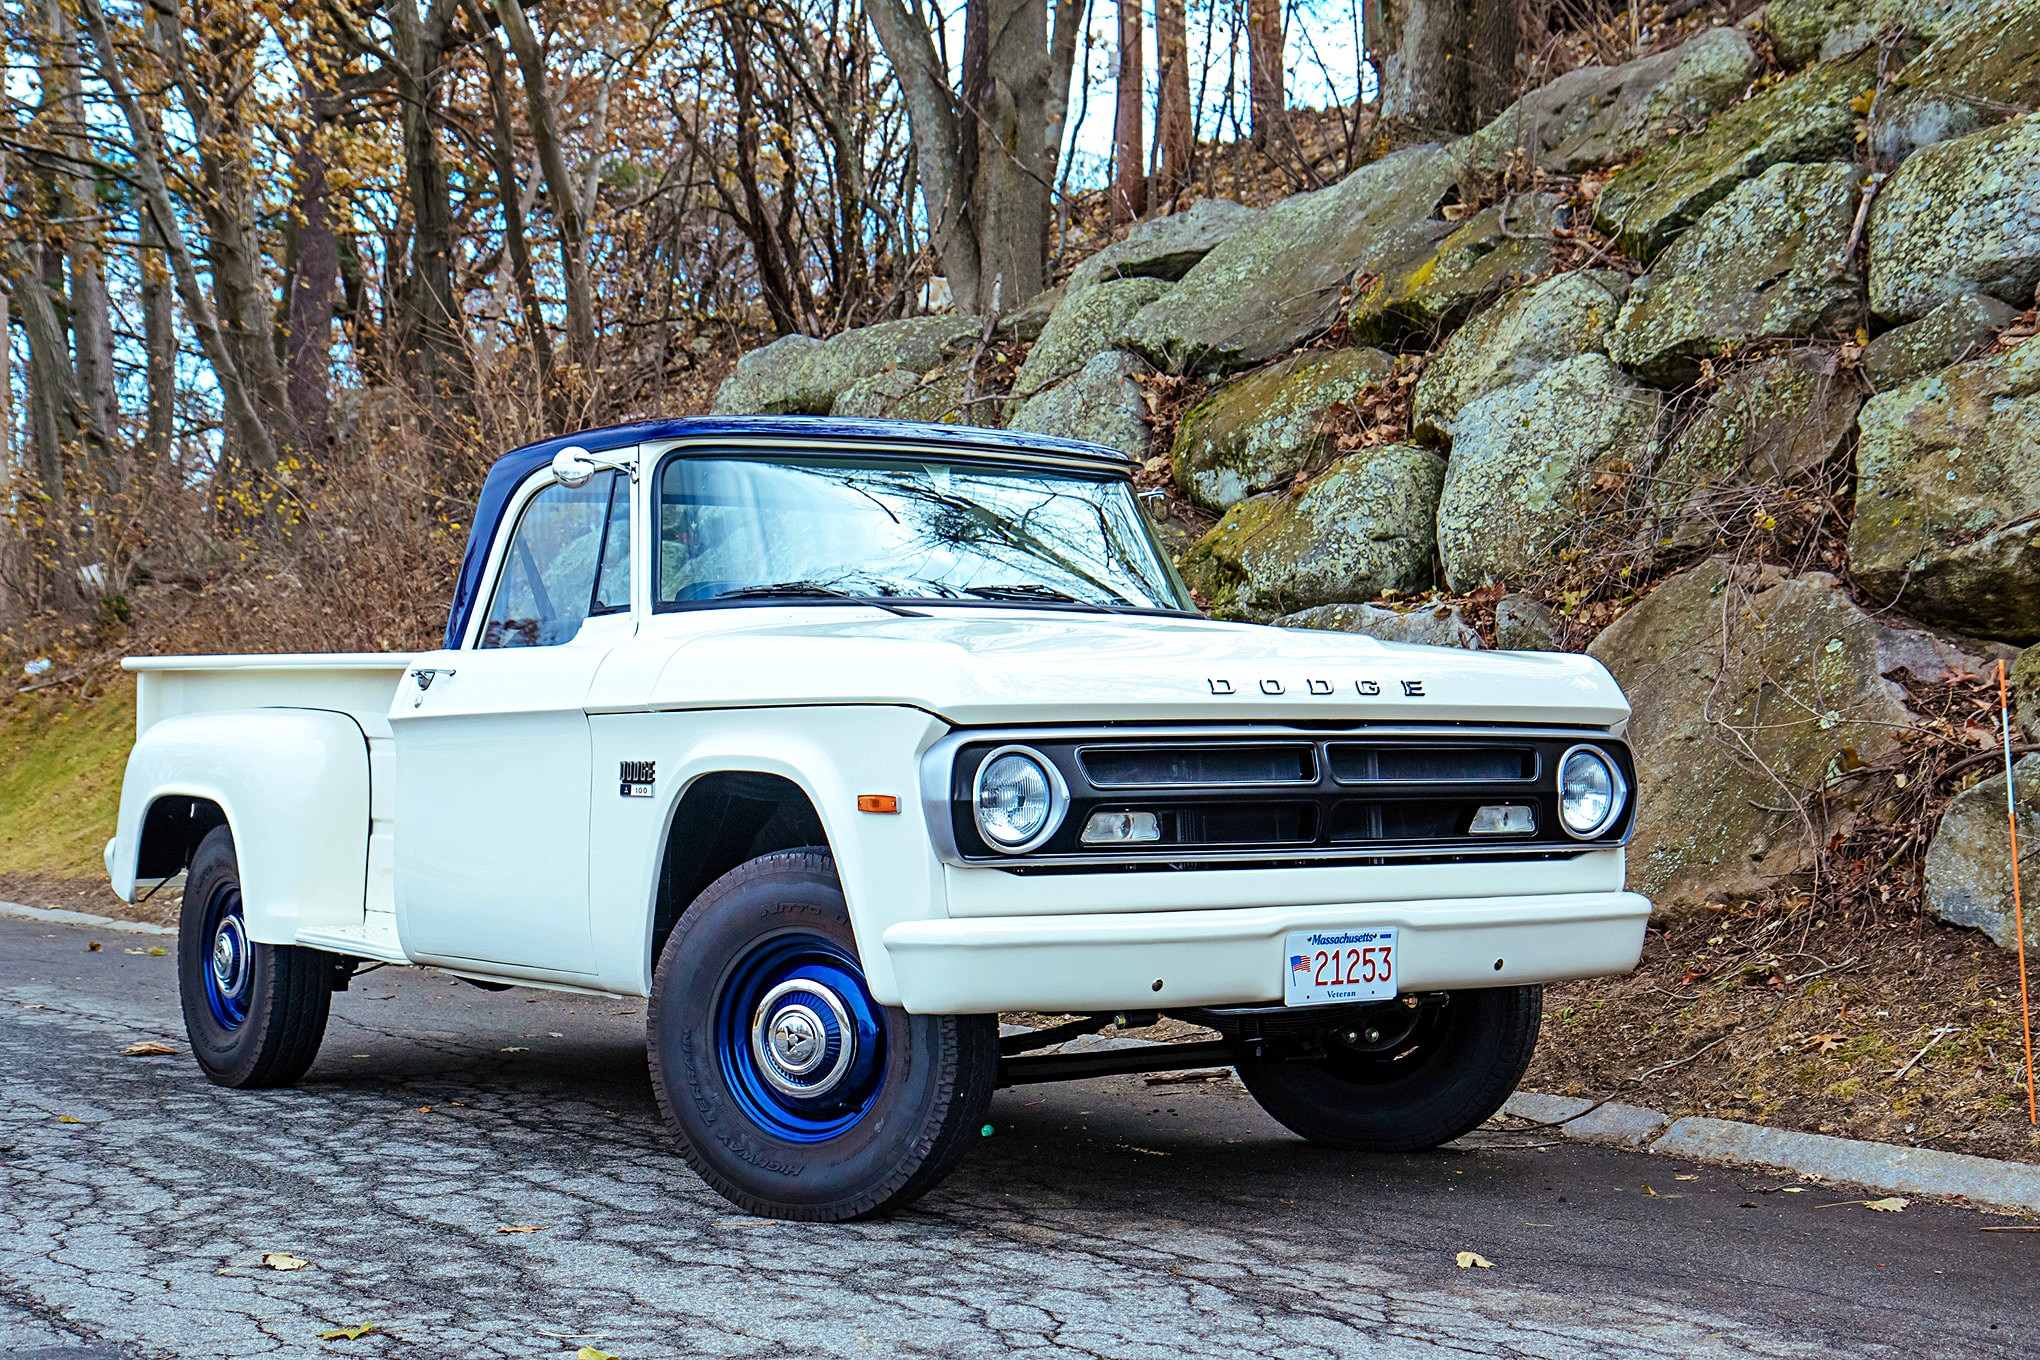 medium resolution of jim crotty updates his family 1970 dodge d100 u s forest service 1970 dodge d100 wiring harness